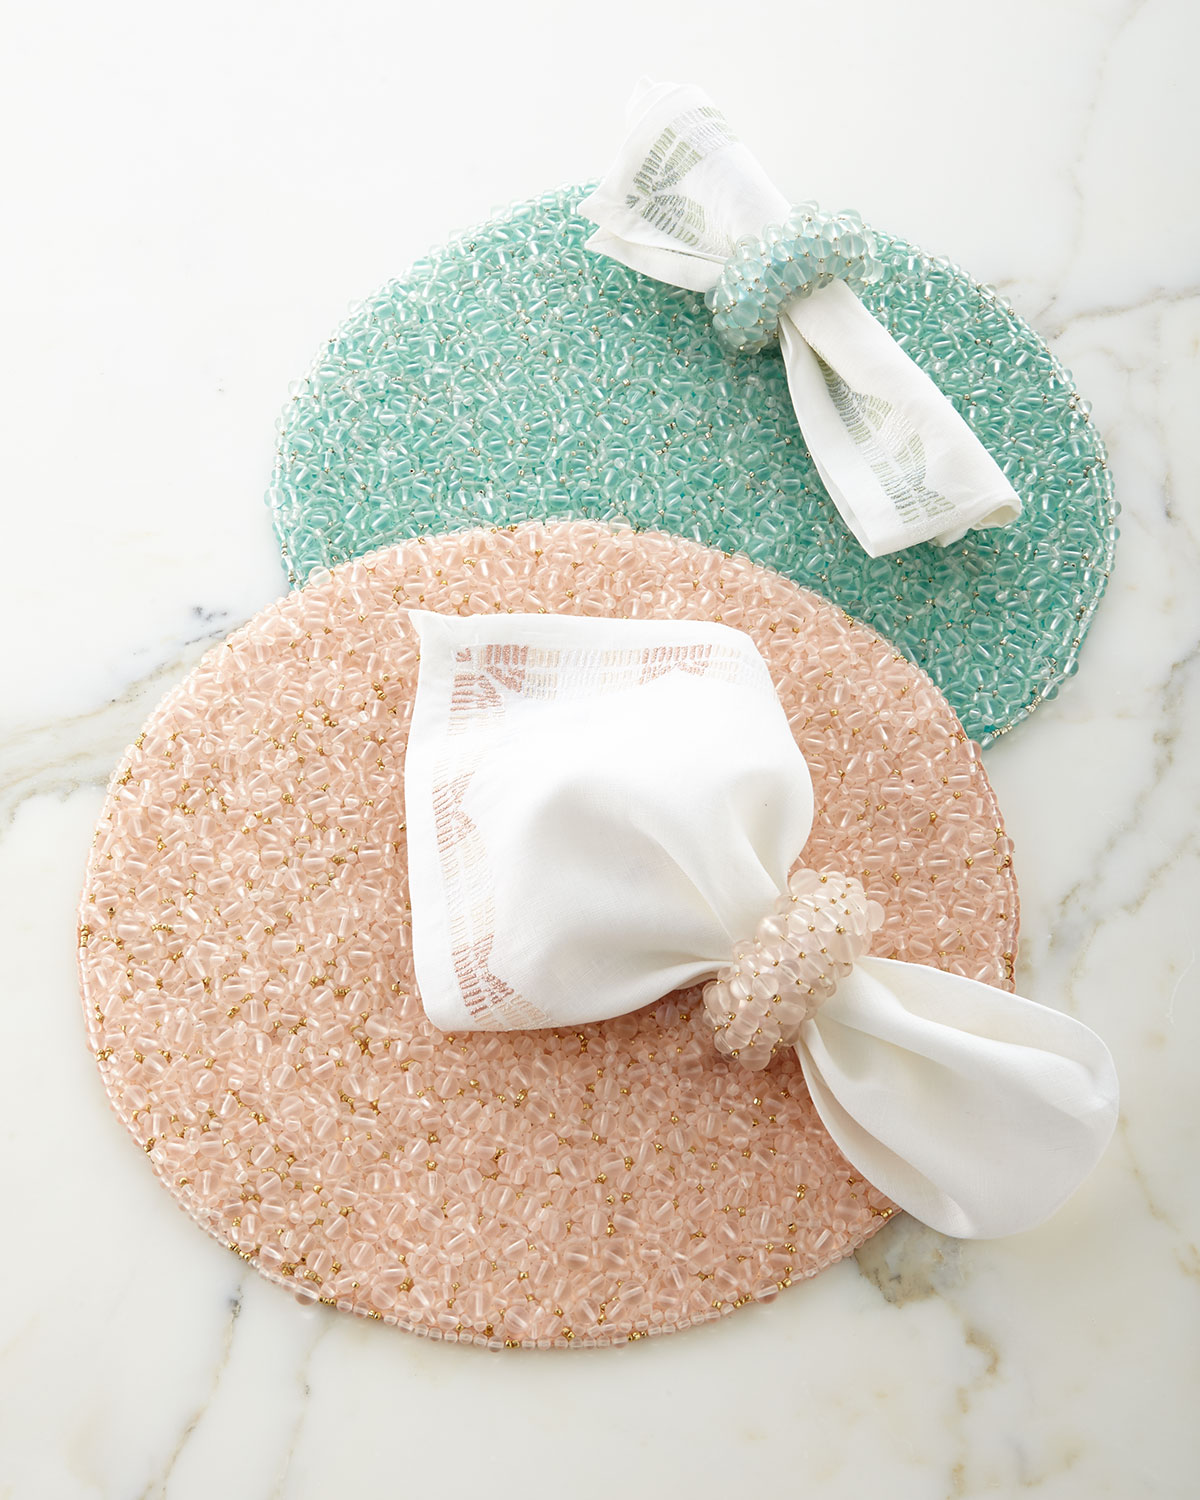 Frost Round Placemat